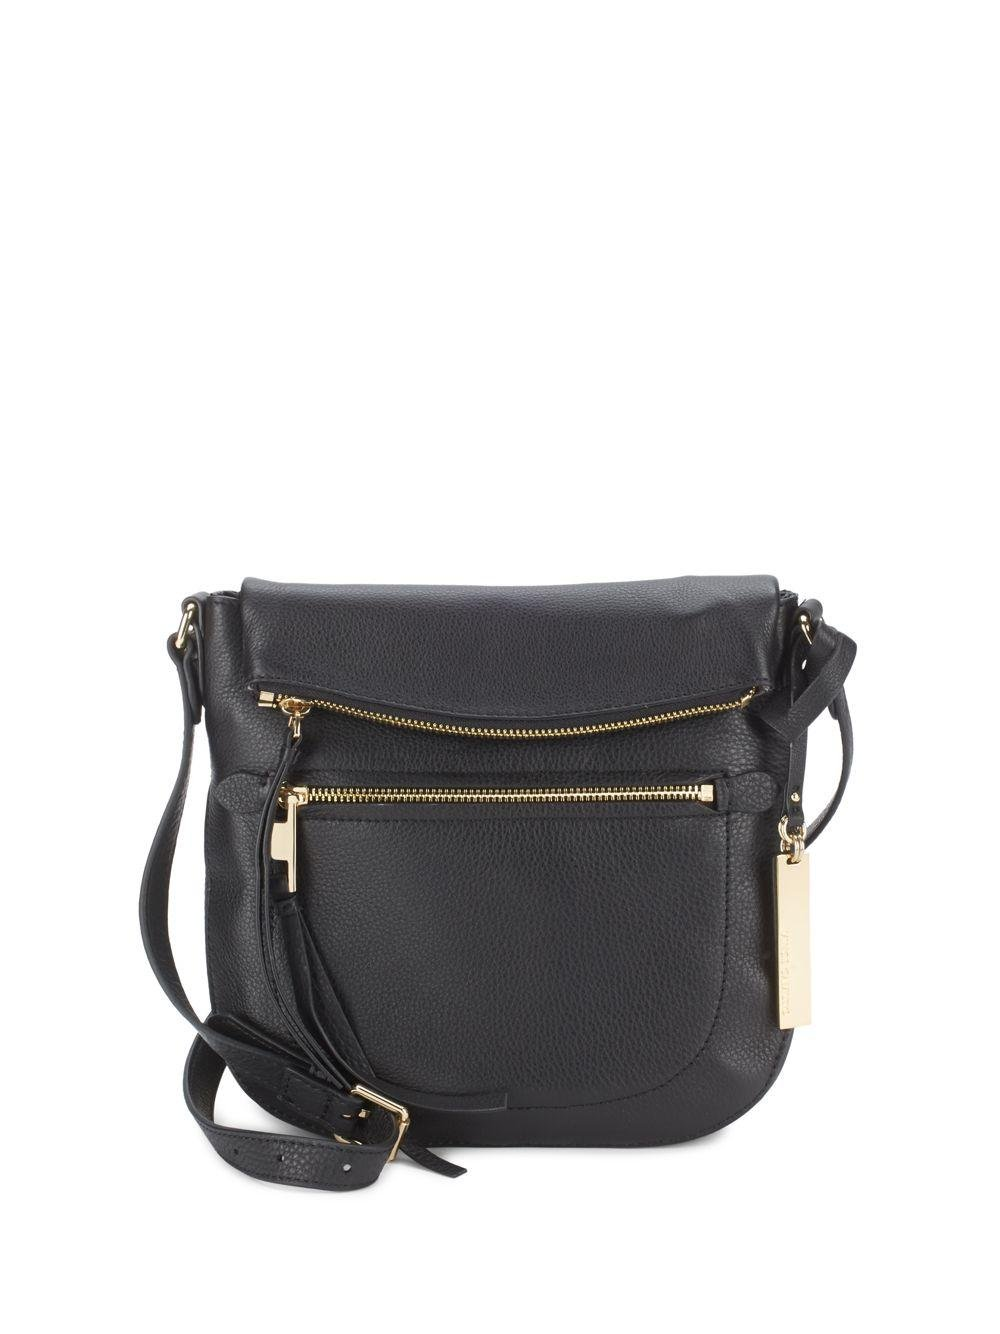 Vince camuto Leather Crossbody Bag in Black | Lyst